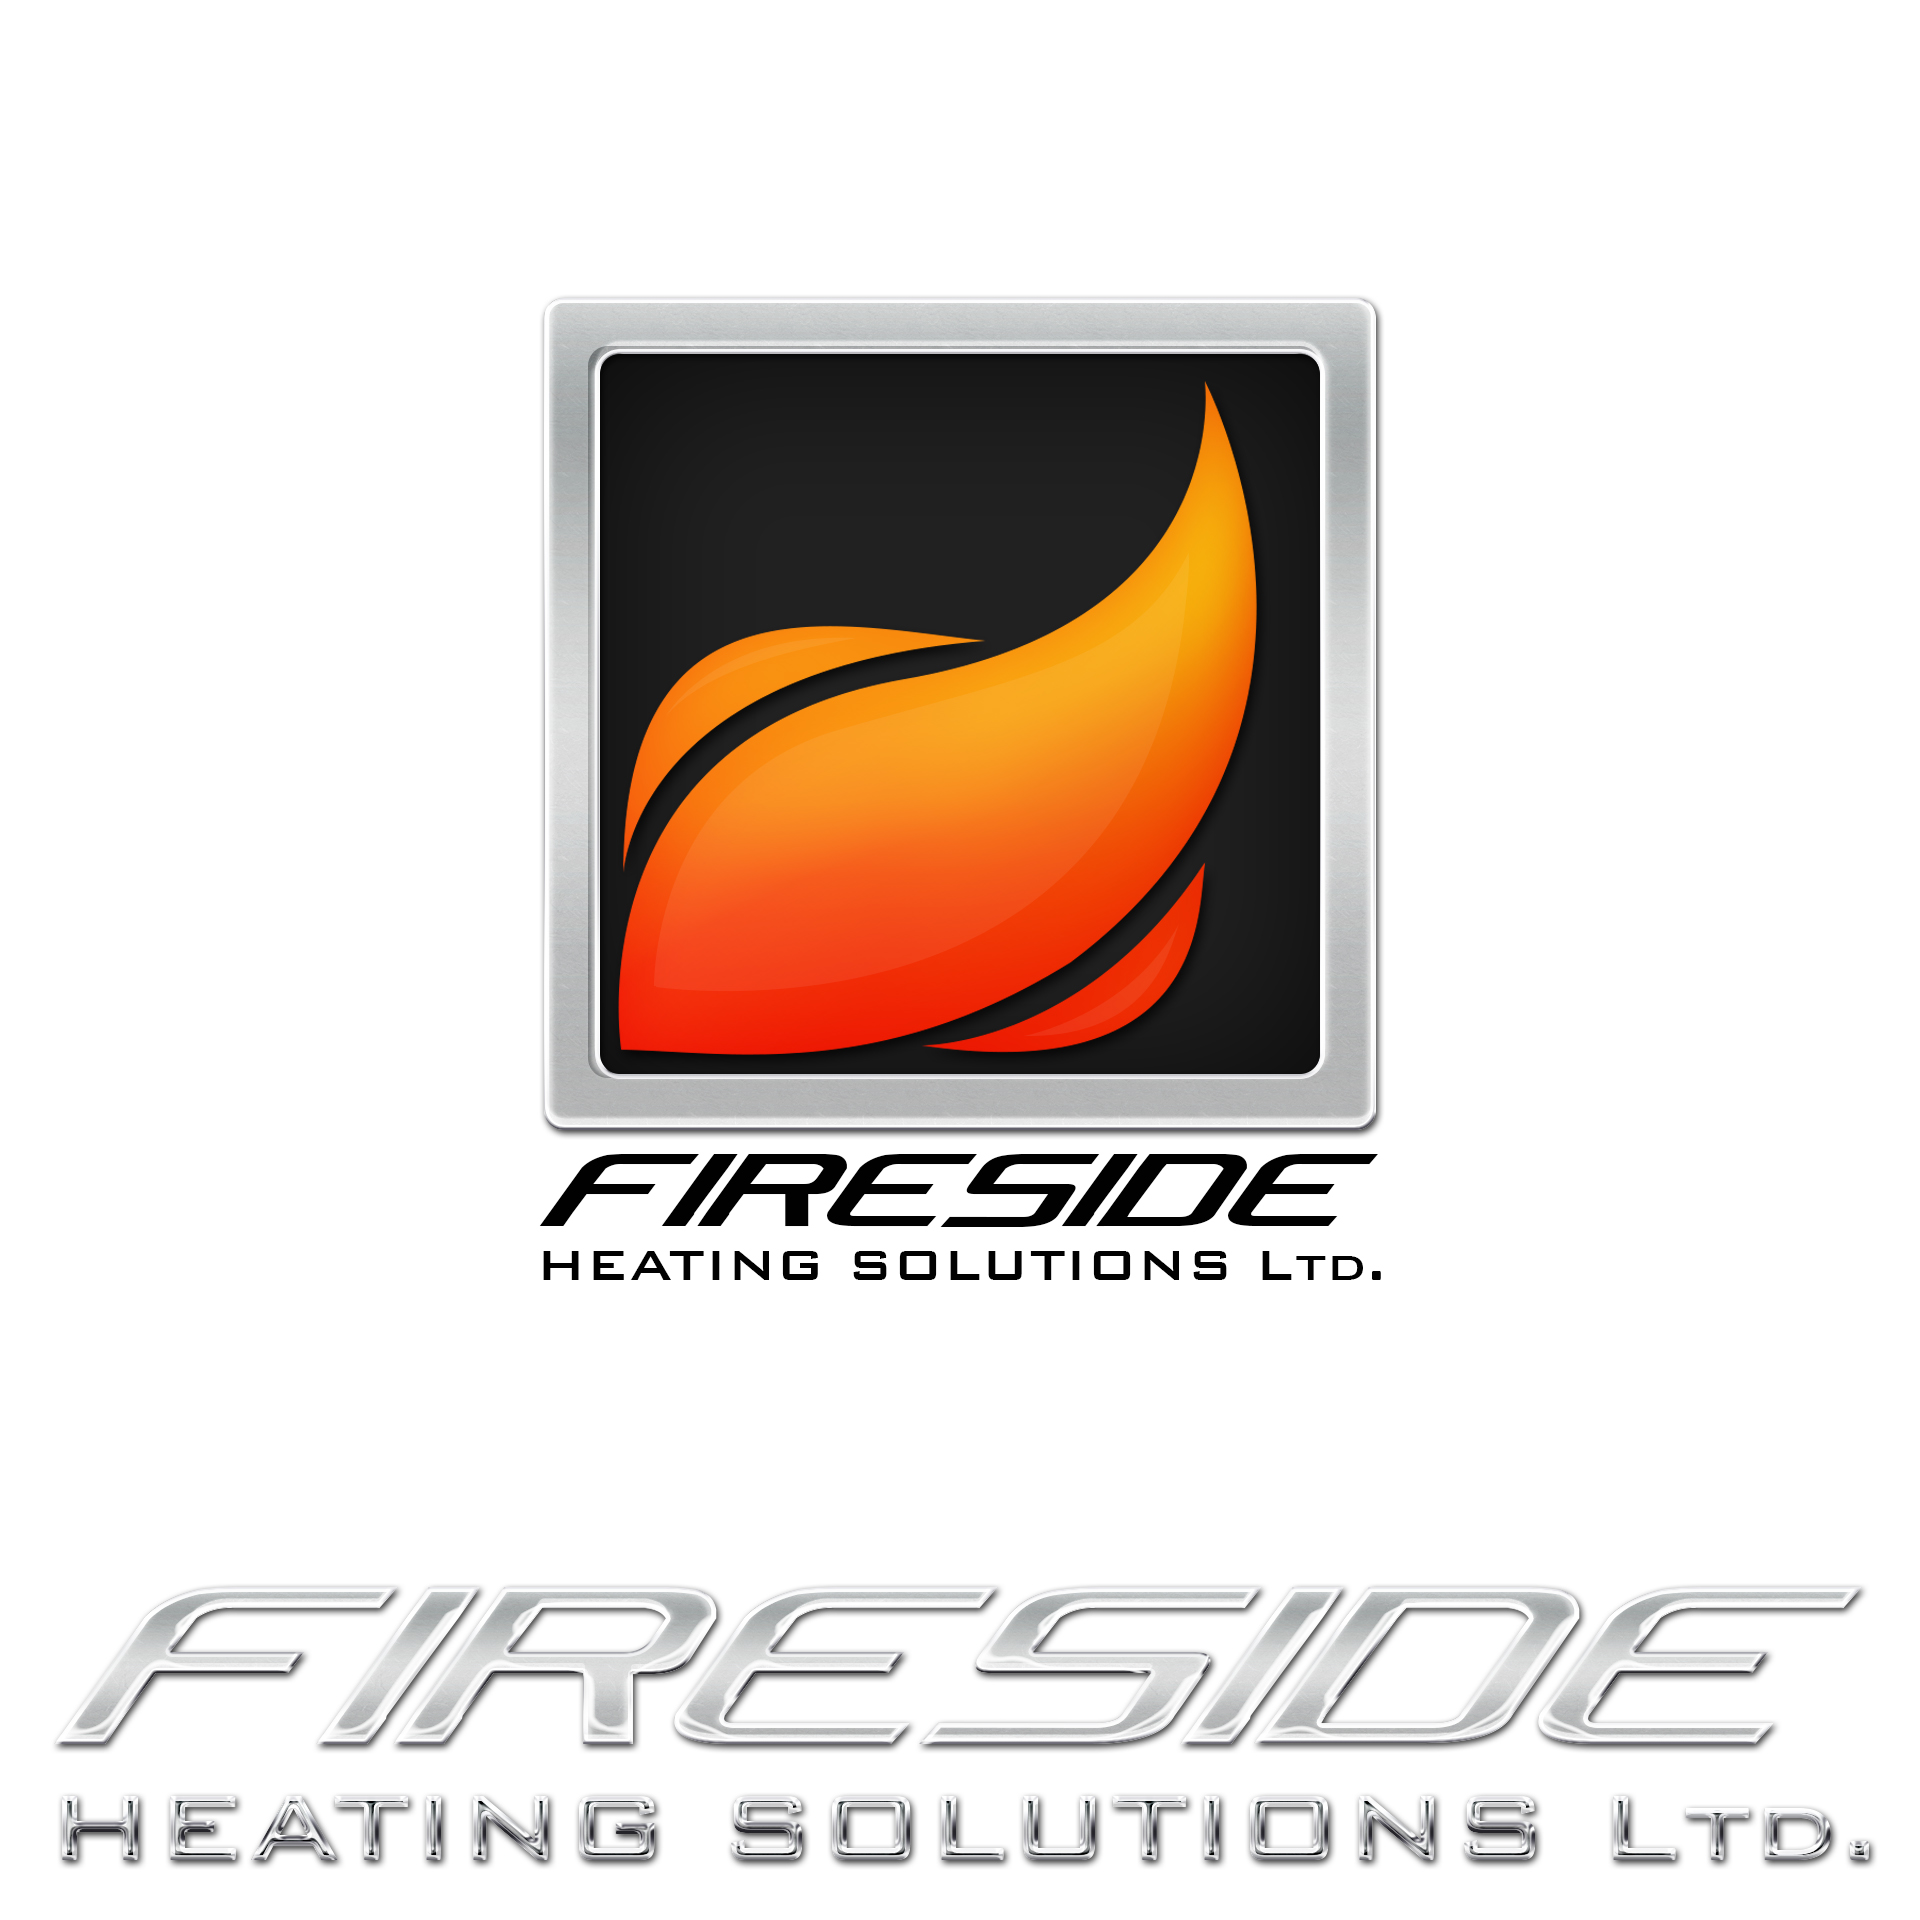 Logo Design by chAnDOS - Entry No. 115 in the Logo Design Contest Creative Logo Design for Fireside Heating Solutions Ltd..